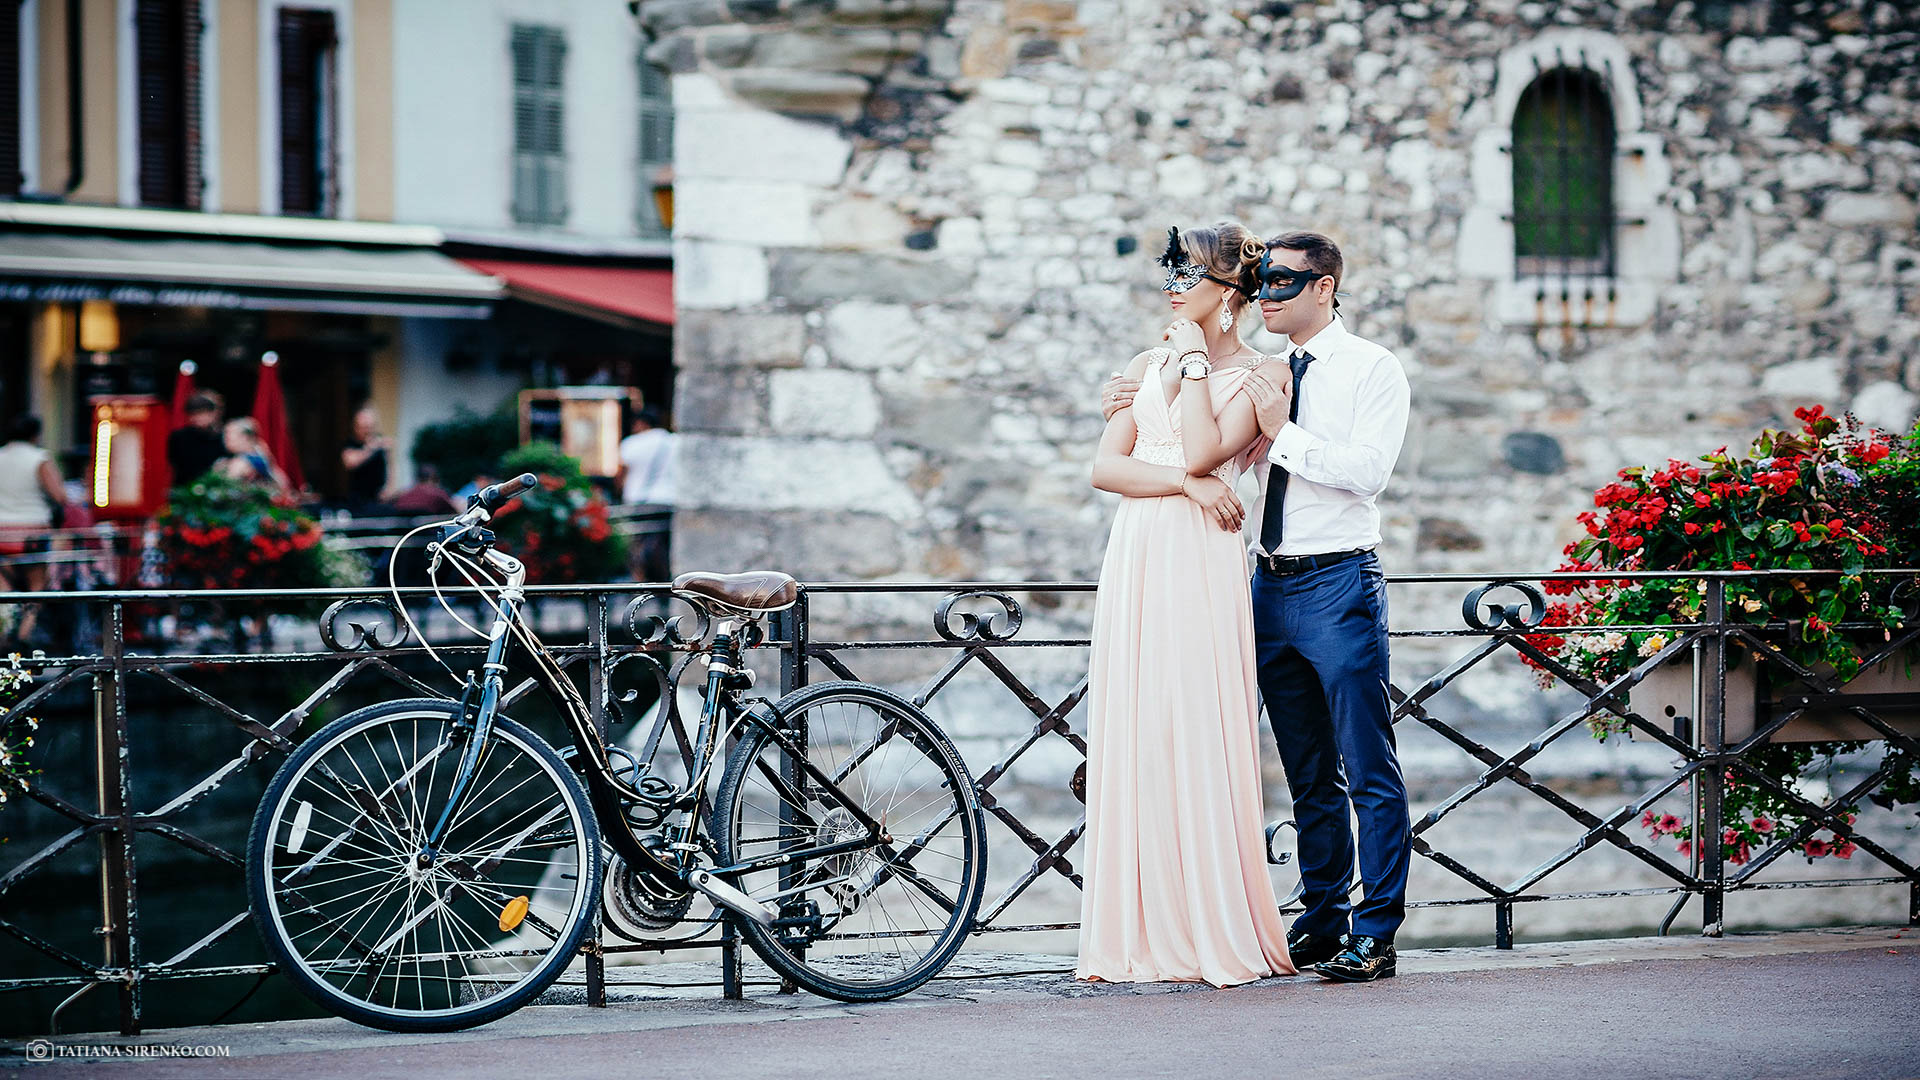 Photoshoot Love Story in France